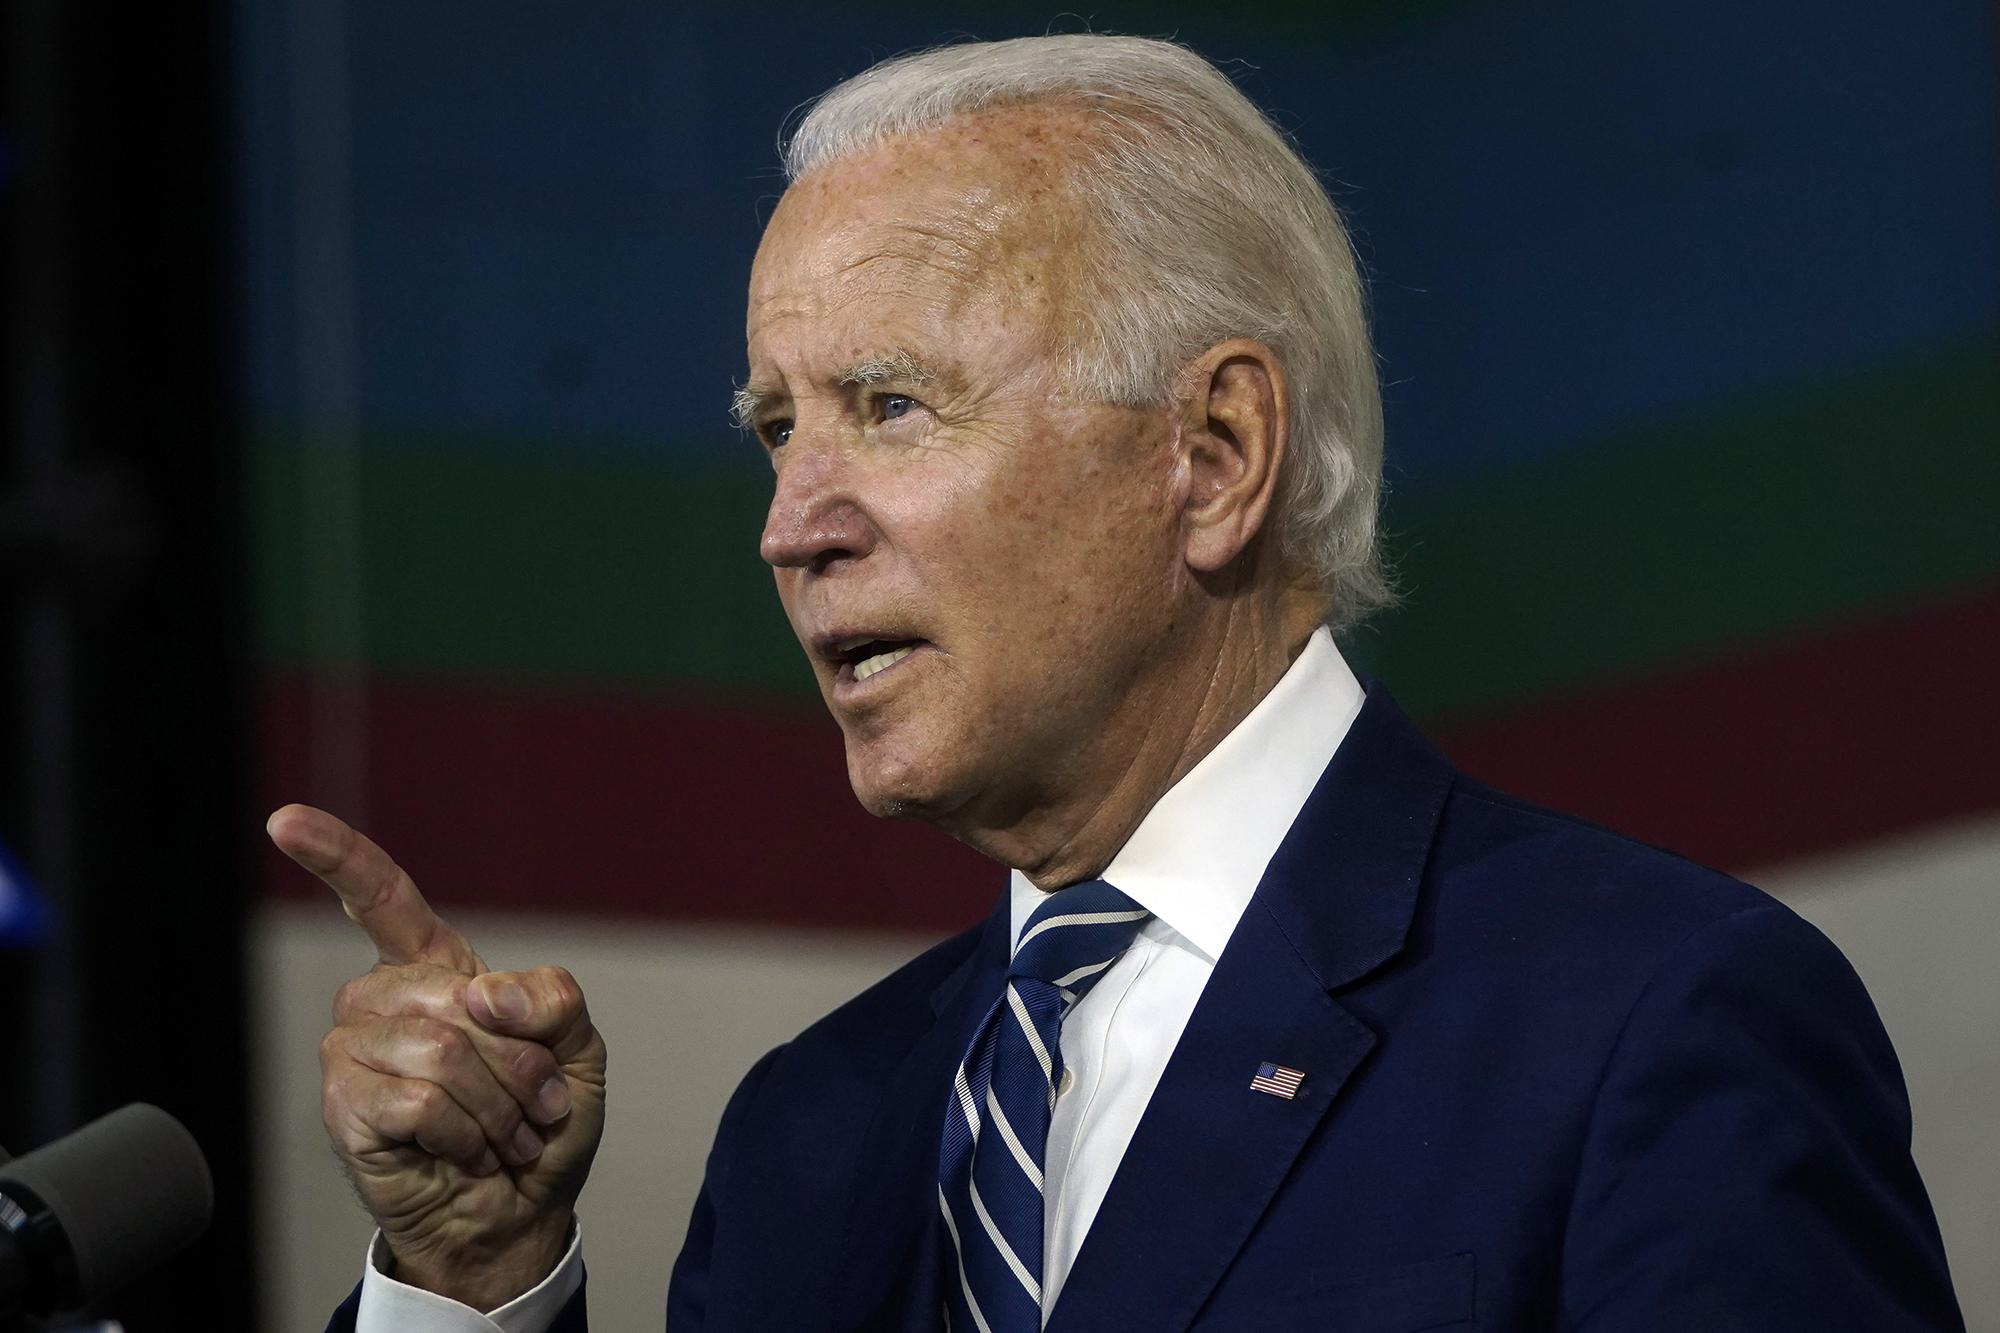 Democratic presidential candidate former Vice President Joe Biden speaks about economic recovery during a campaign event at Colonial Early Education Program at the Colwyck Center on July 21 in New Castle, Delaware.